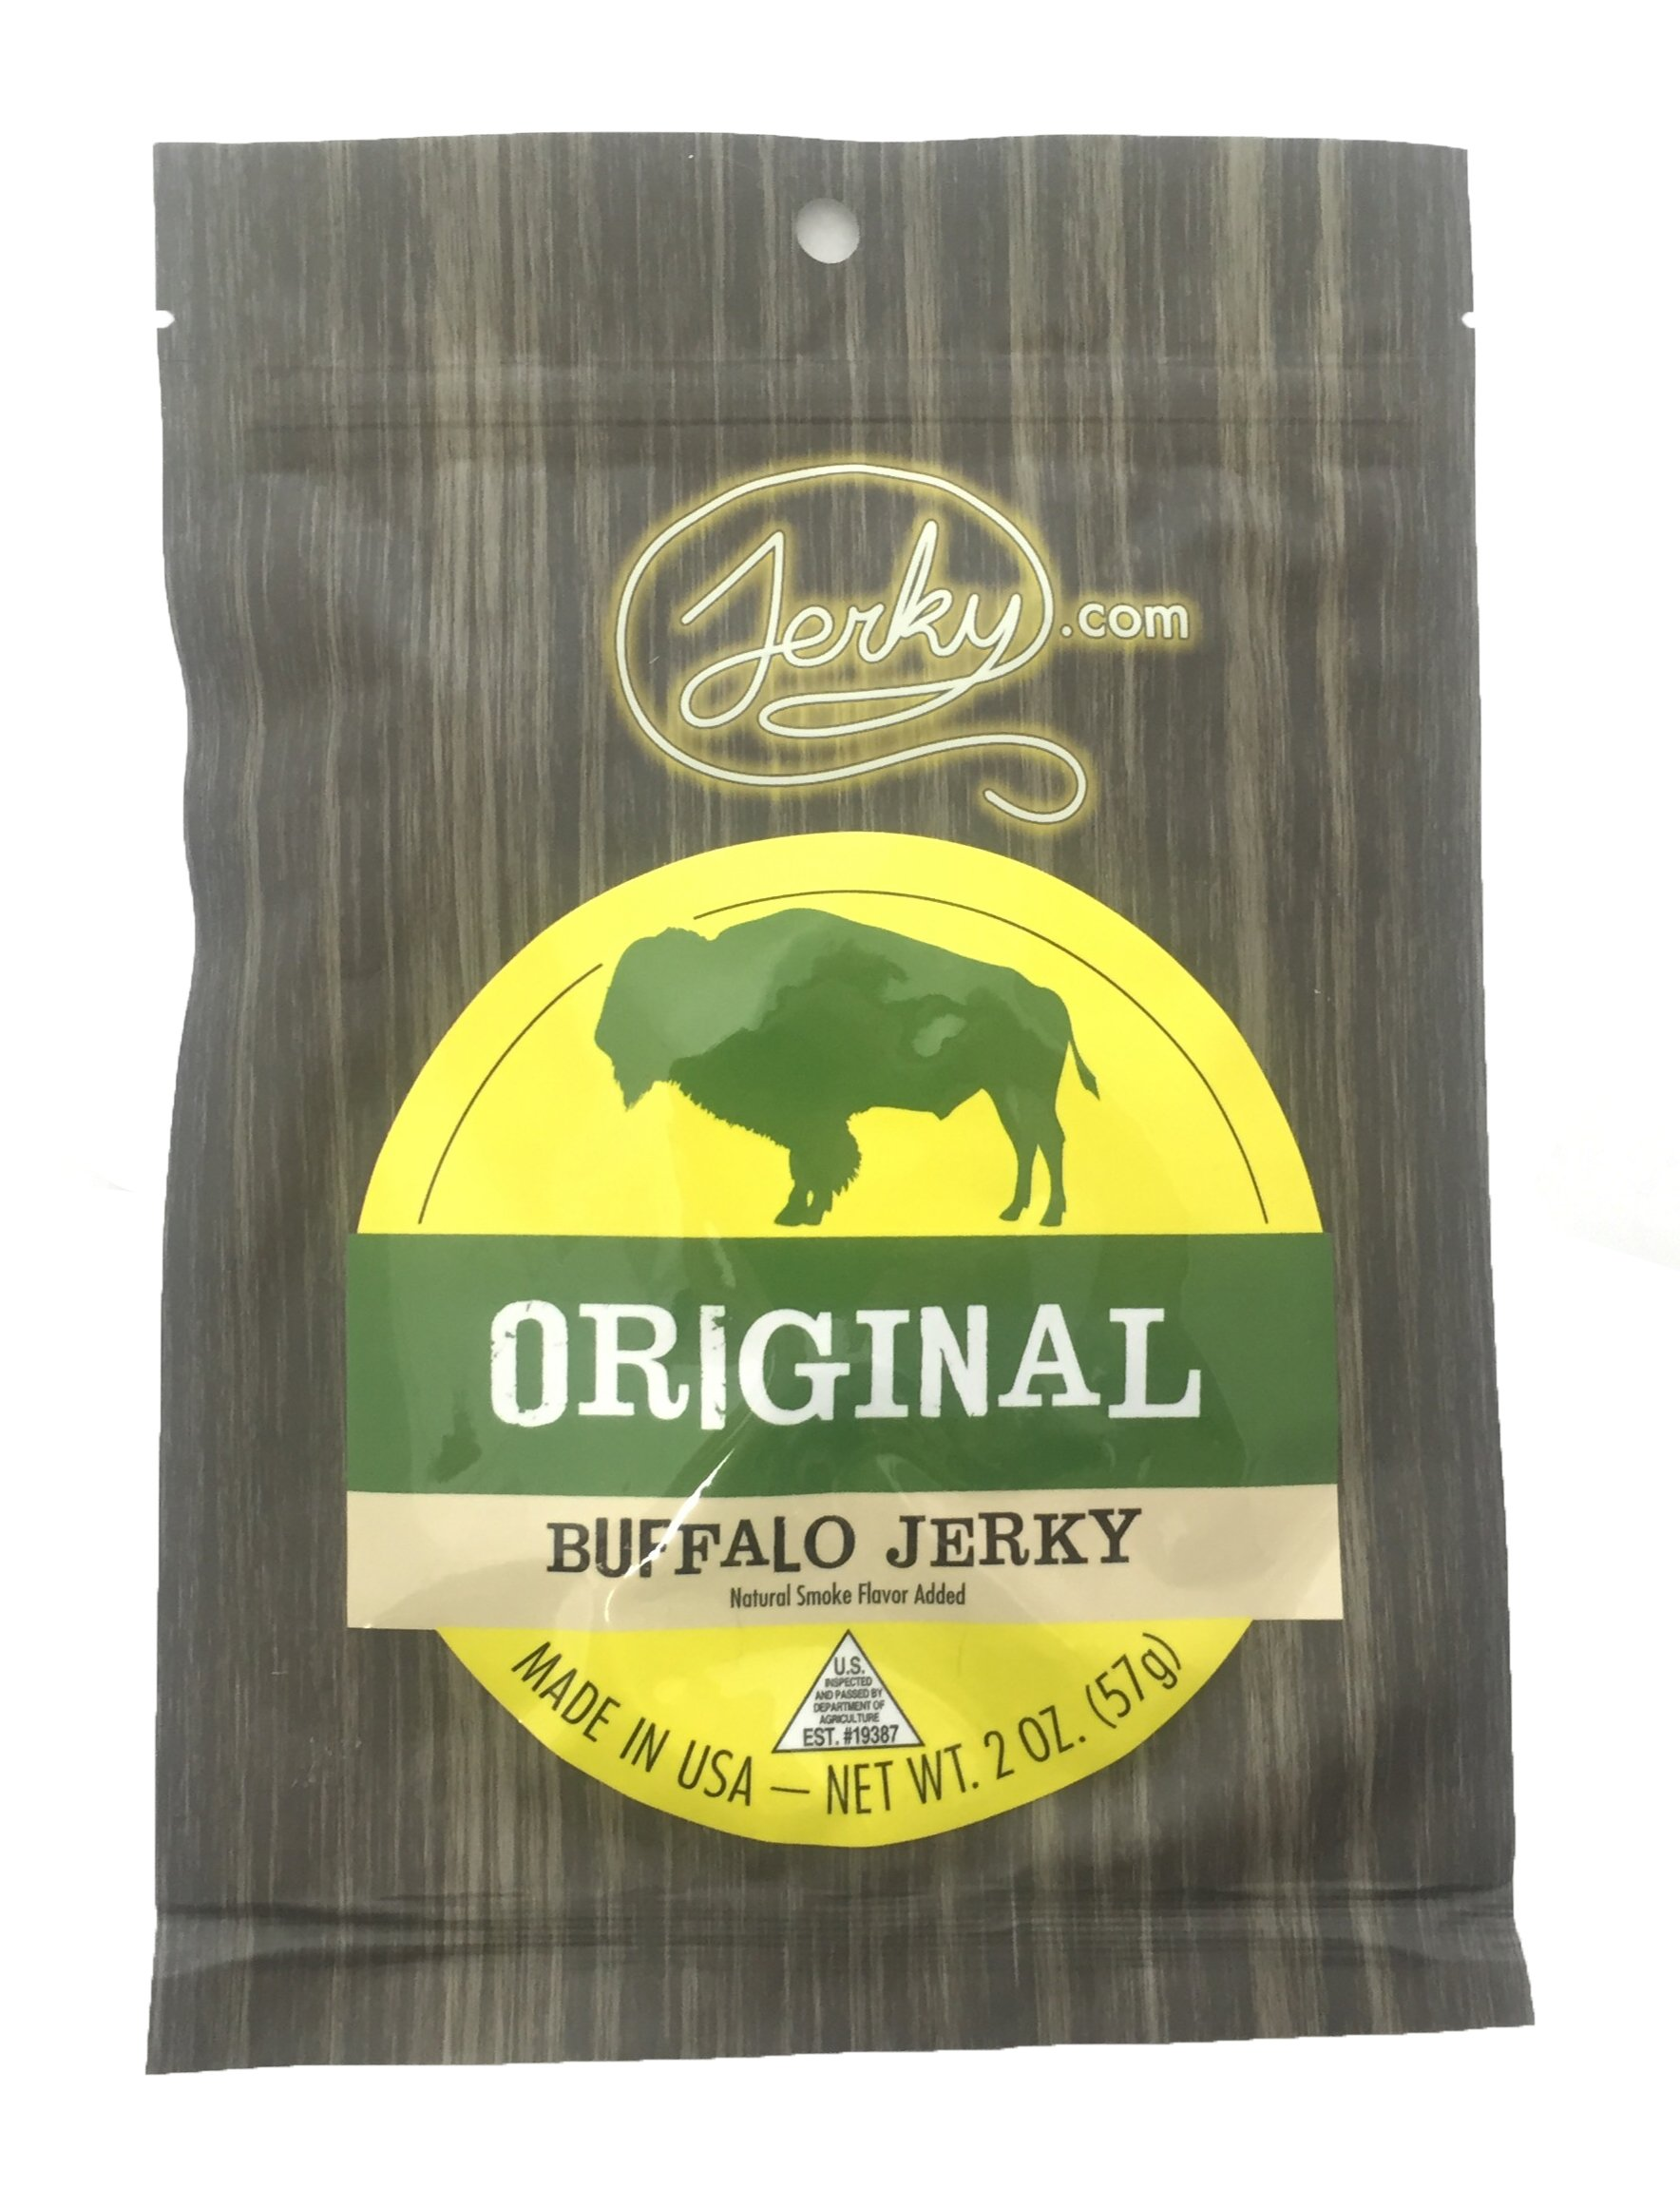 Jerky.com's Original Buffalo Jerky - The Best Wild Game Bison Jerky on the Market - 100% Whole Muscle Buffalo - No Added Preservatives, No Added Nitrates and No Added MSG - 1.75 oz.